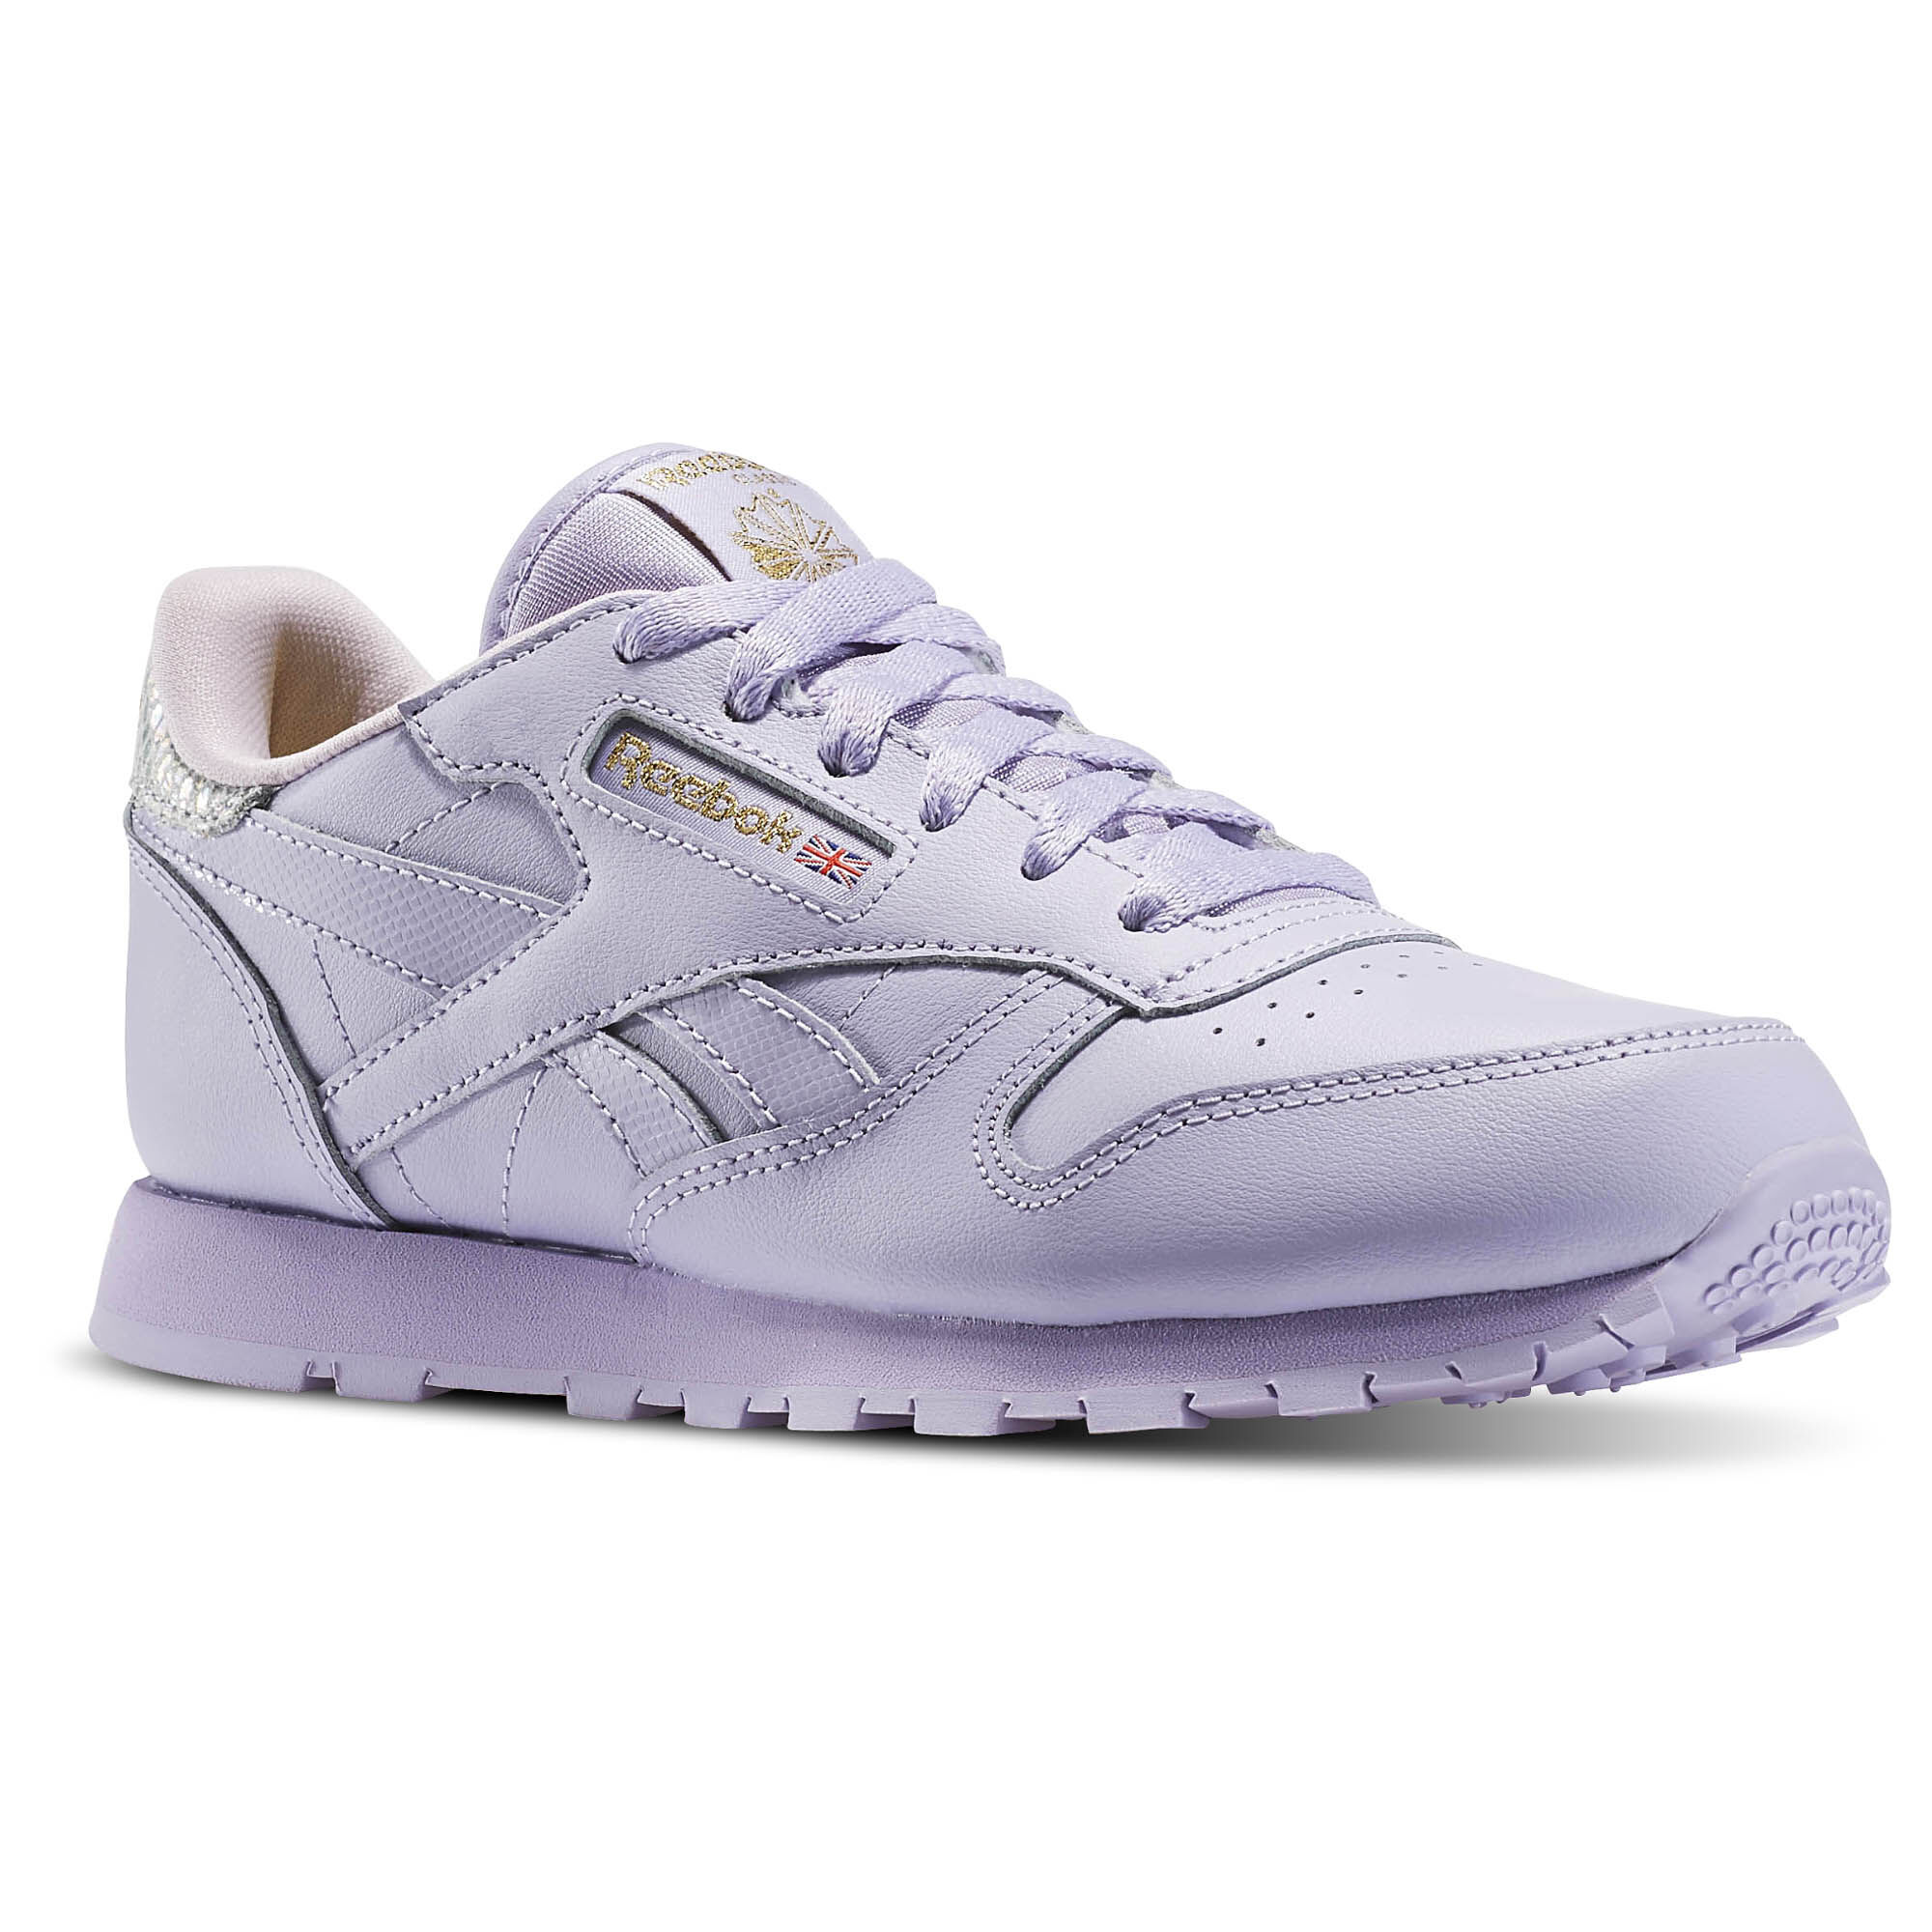 reebok classic white gold cheap   OFF76% The Largest Catalog Discounts 8fc1c620f